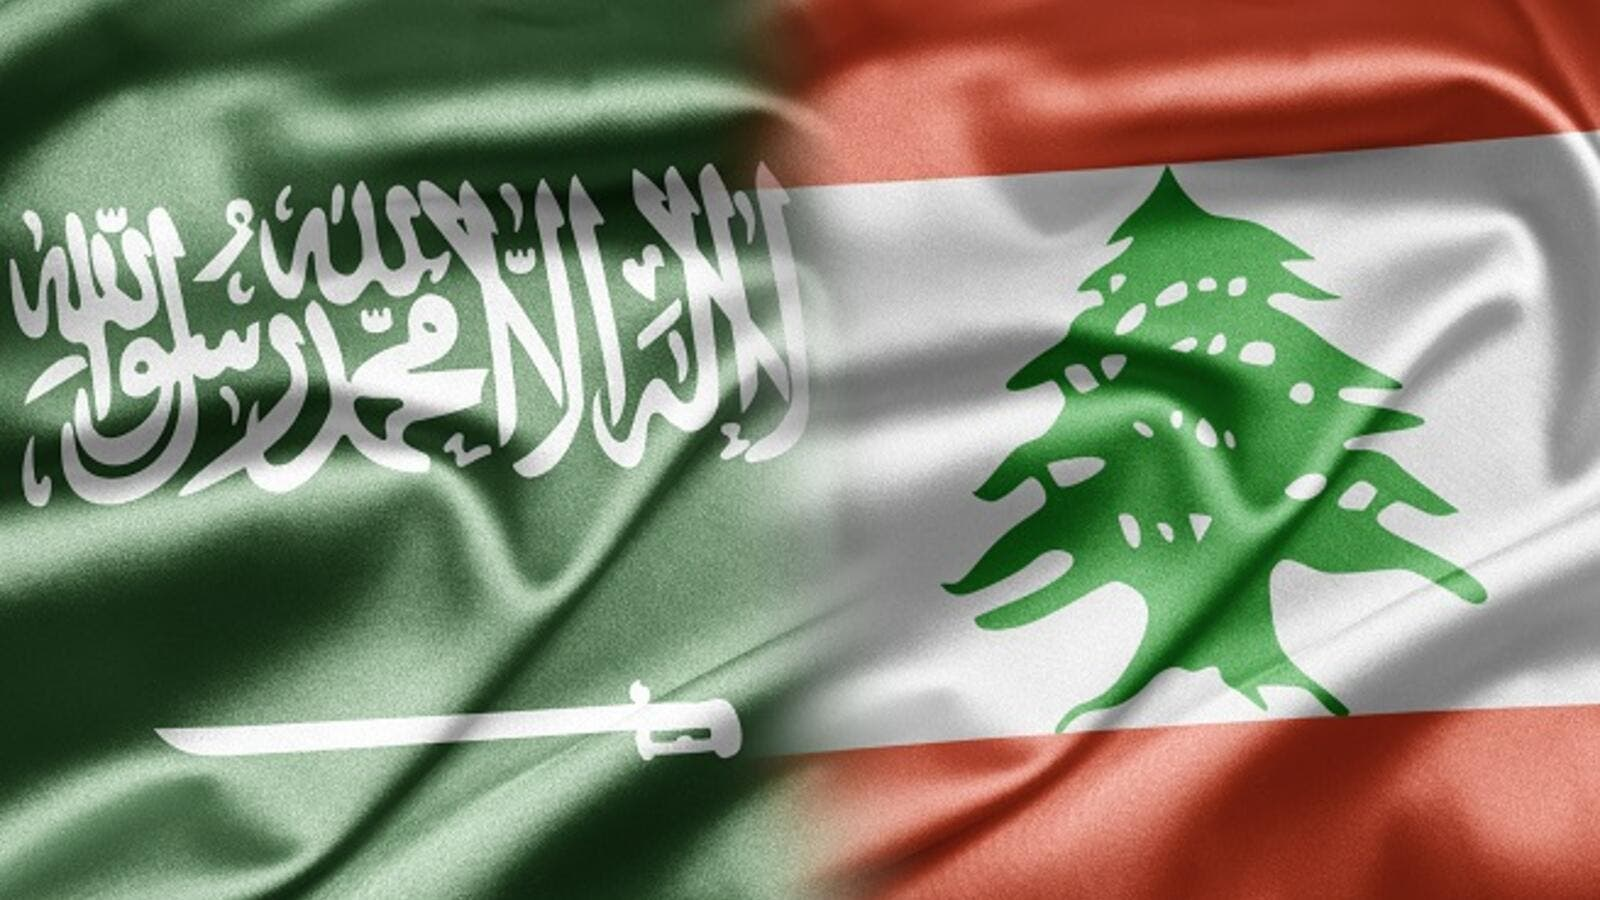 Thursday's meeting at the Saudi Embassy also touched on Lebanon's relations with Riyadh in various fields including economic, trade and social matters. (Shutterstock)